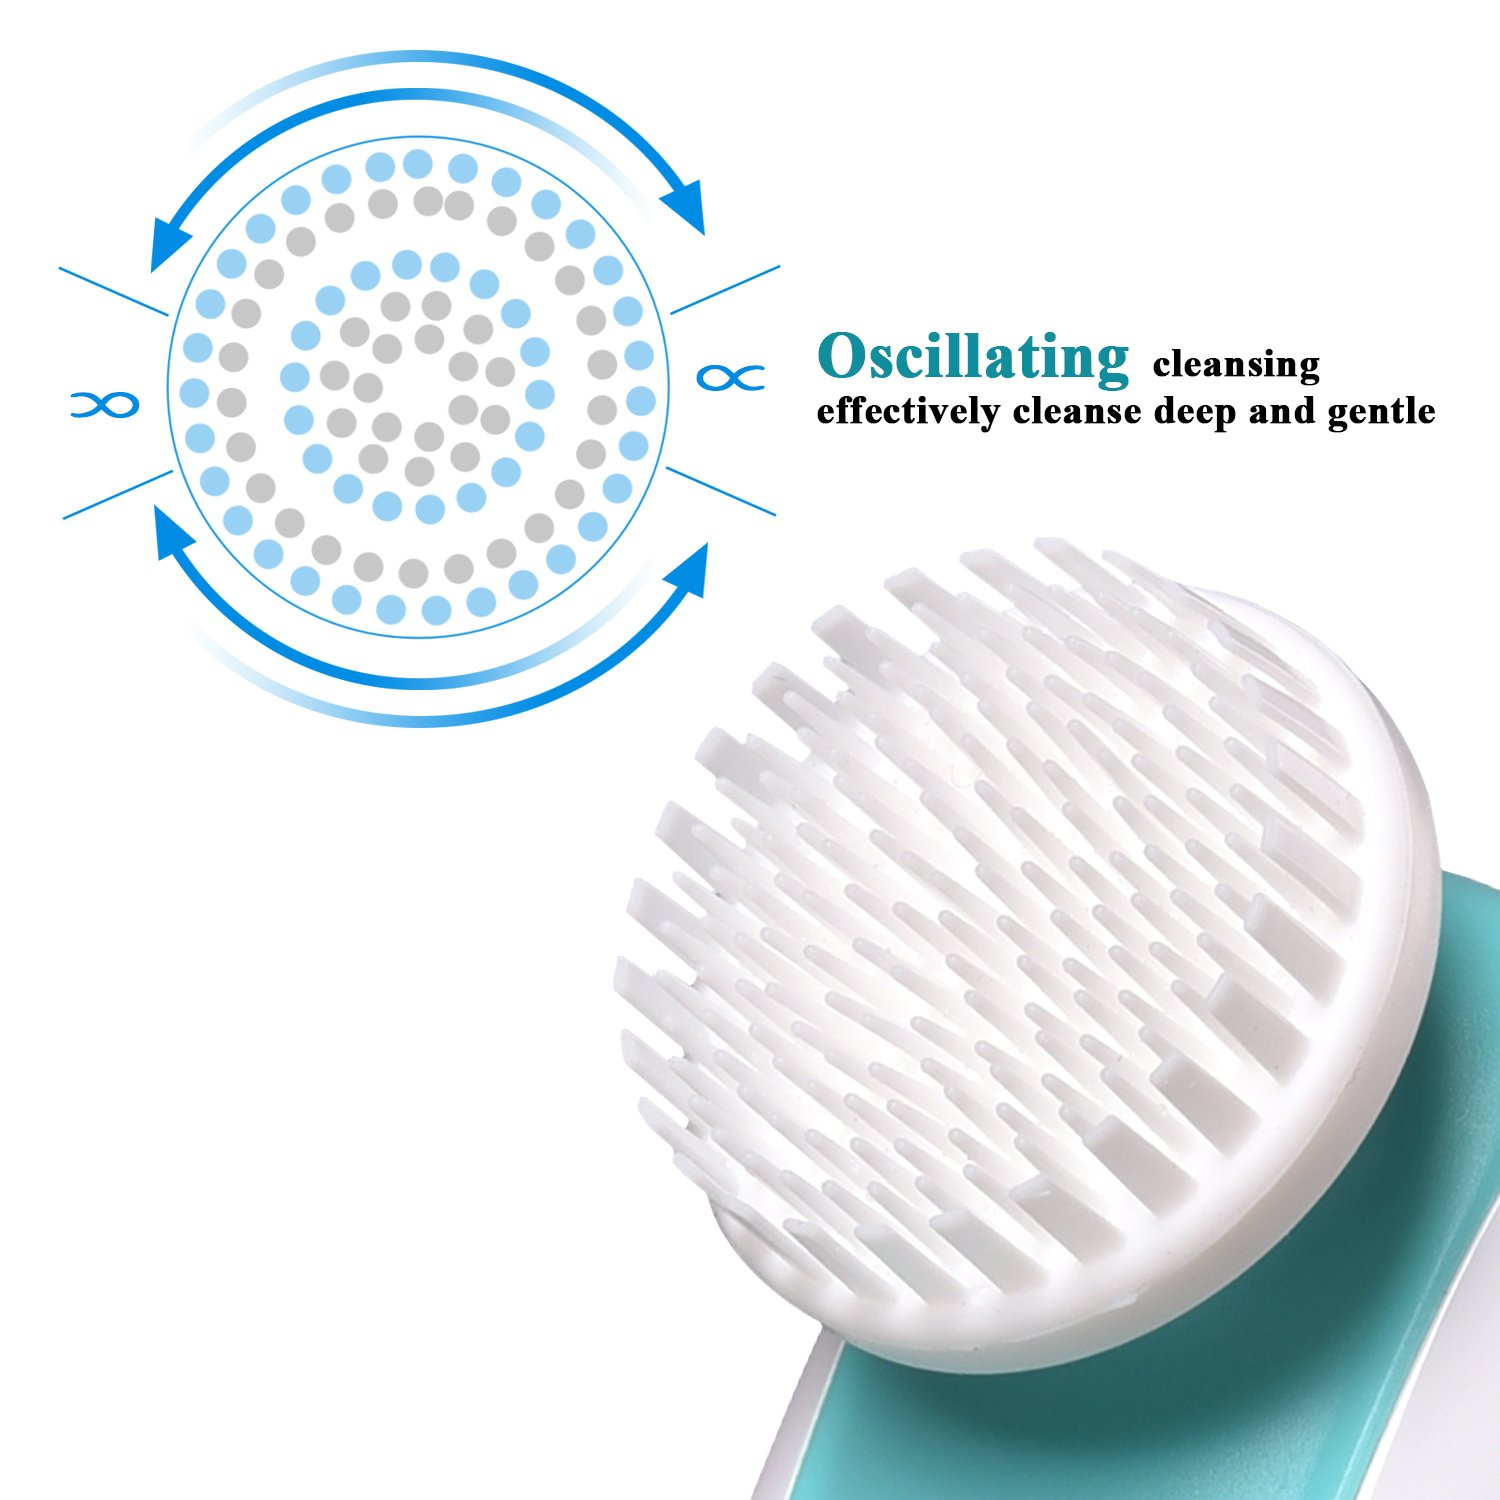 Sonic 3 in 1 Facial Cleansing Brush TANAAB - Oscillating Silicone Set Waterproof Gentle for Women & Men Unclog Pores Remove Dead Cells Blackheads Massage Rejuvenate Skin Reduce Wrinkle